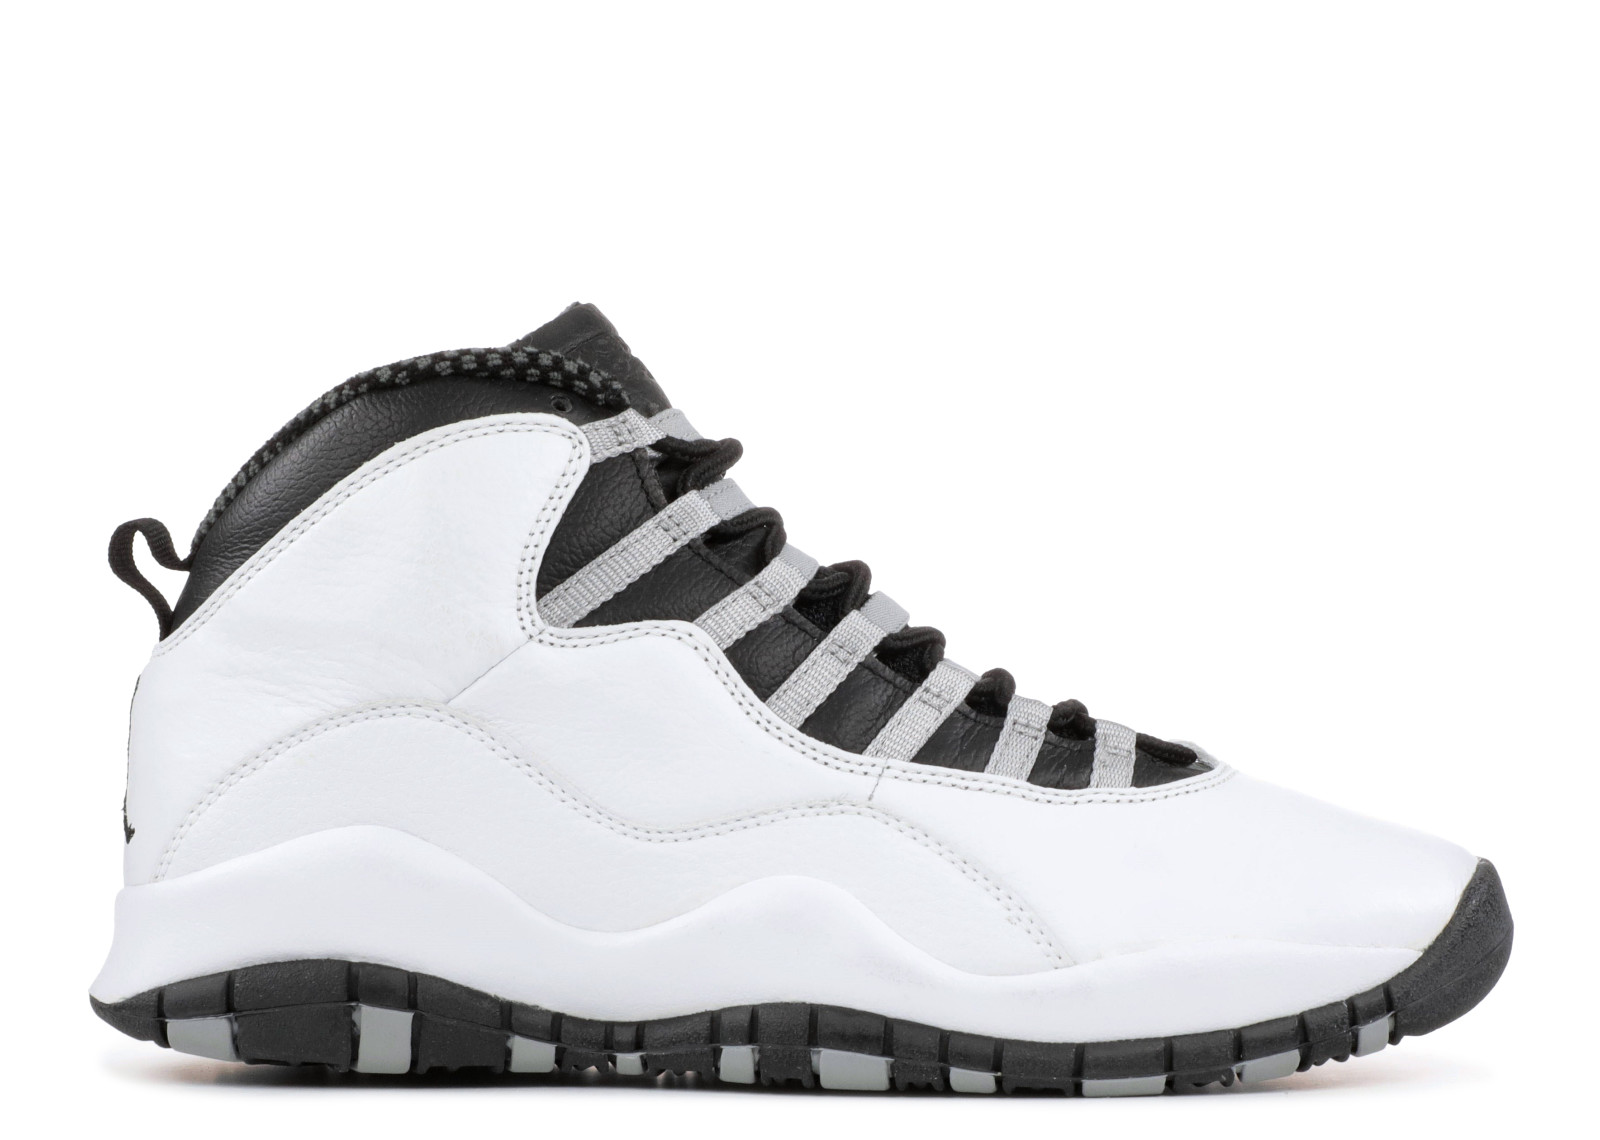 Air Jordan 10 Steel Grey